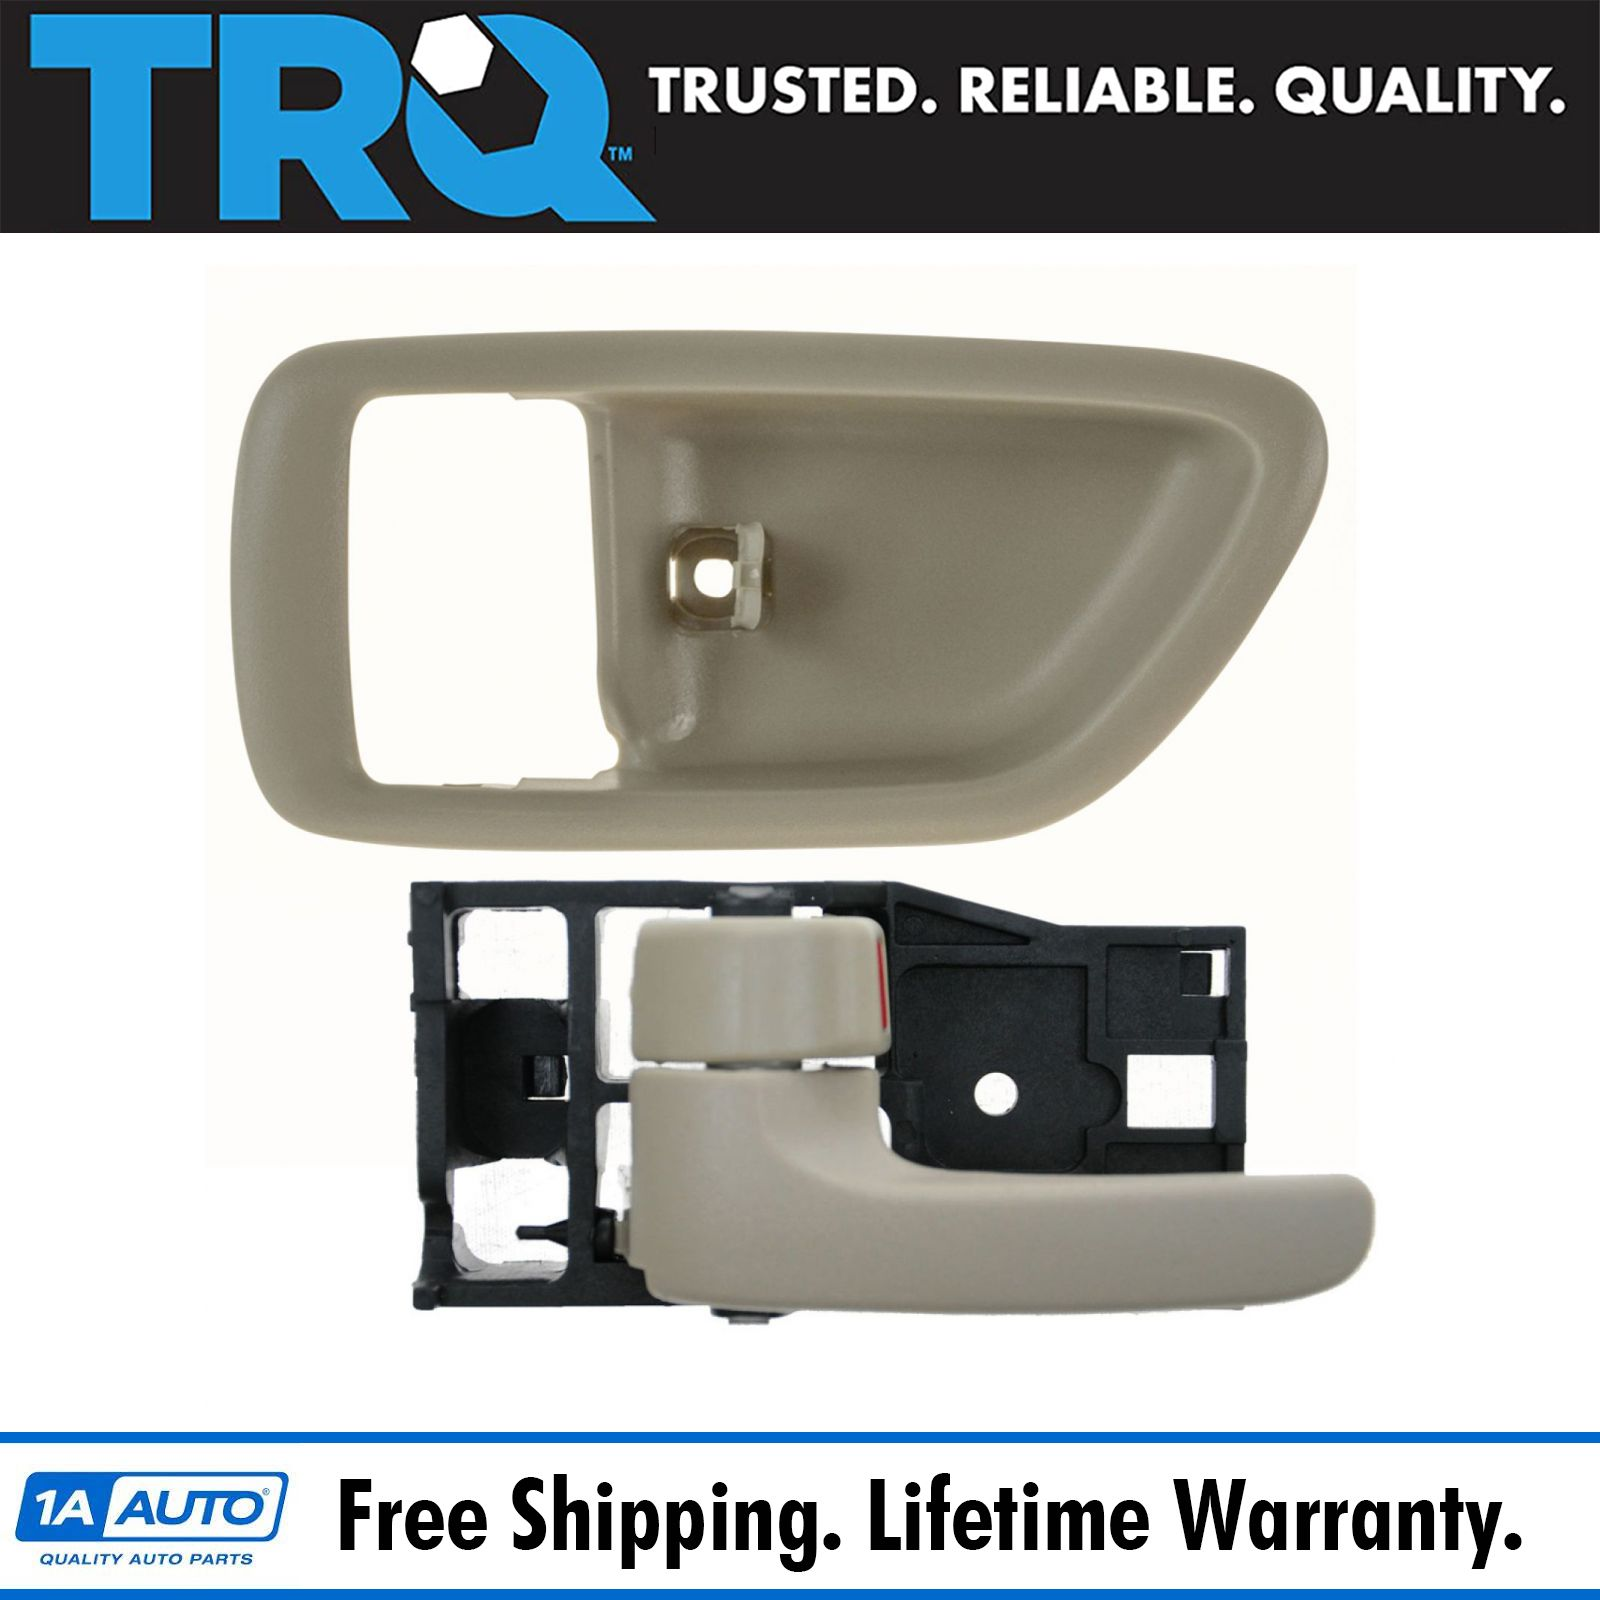 Front Right Inside Door Handle Tan for 00-06 Toyota Tundra Regular Access Cab